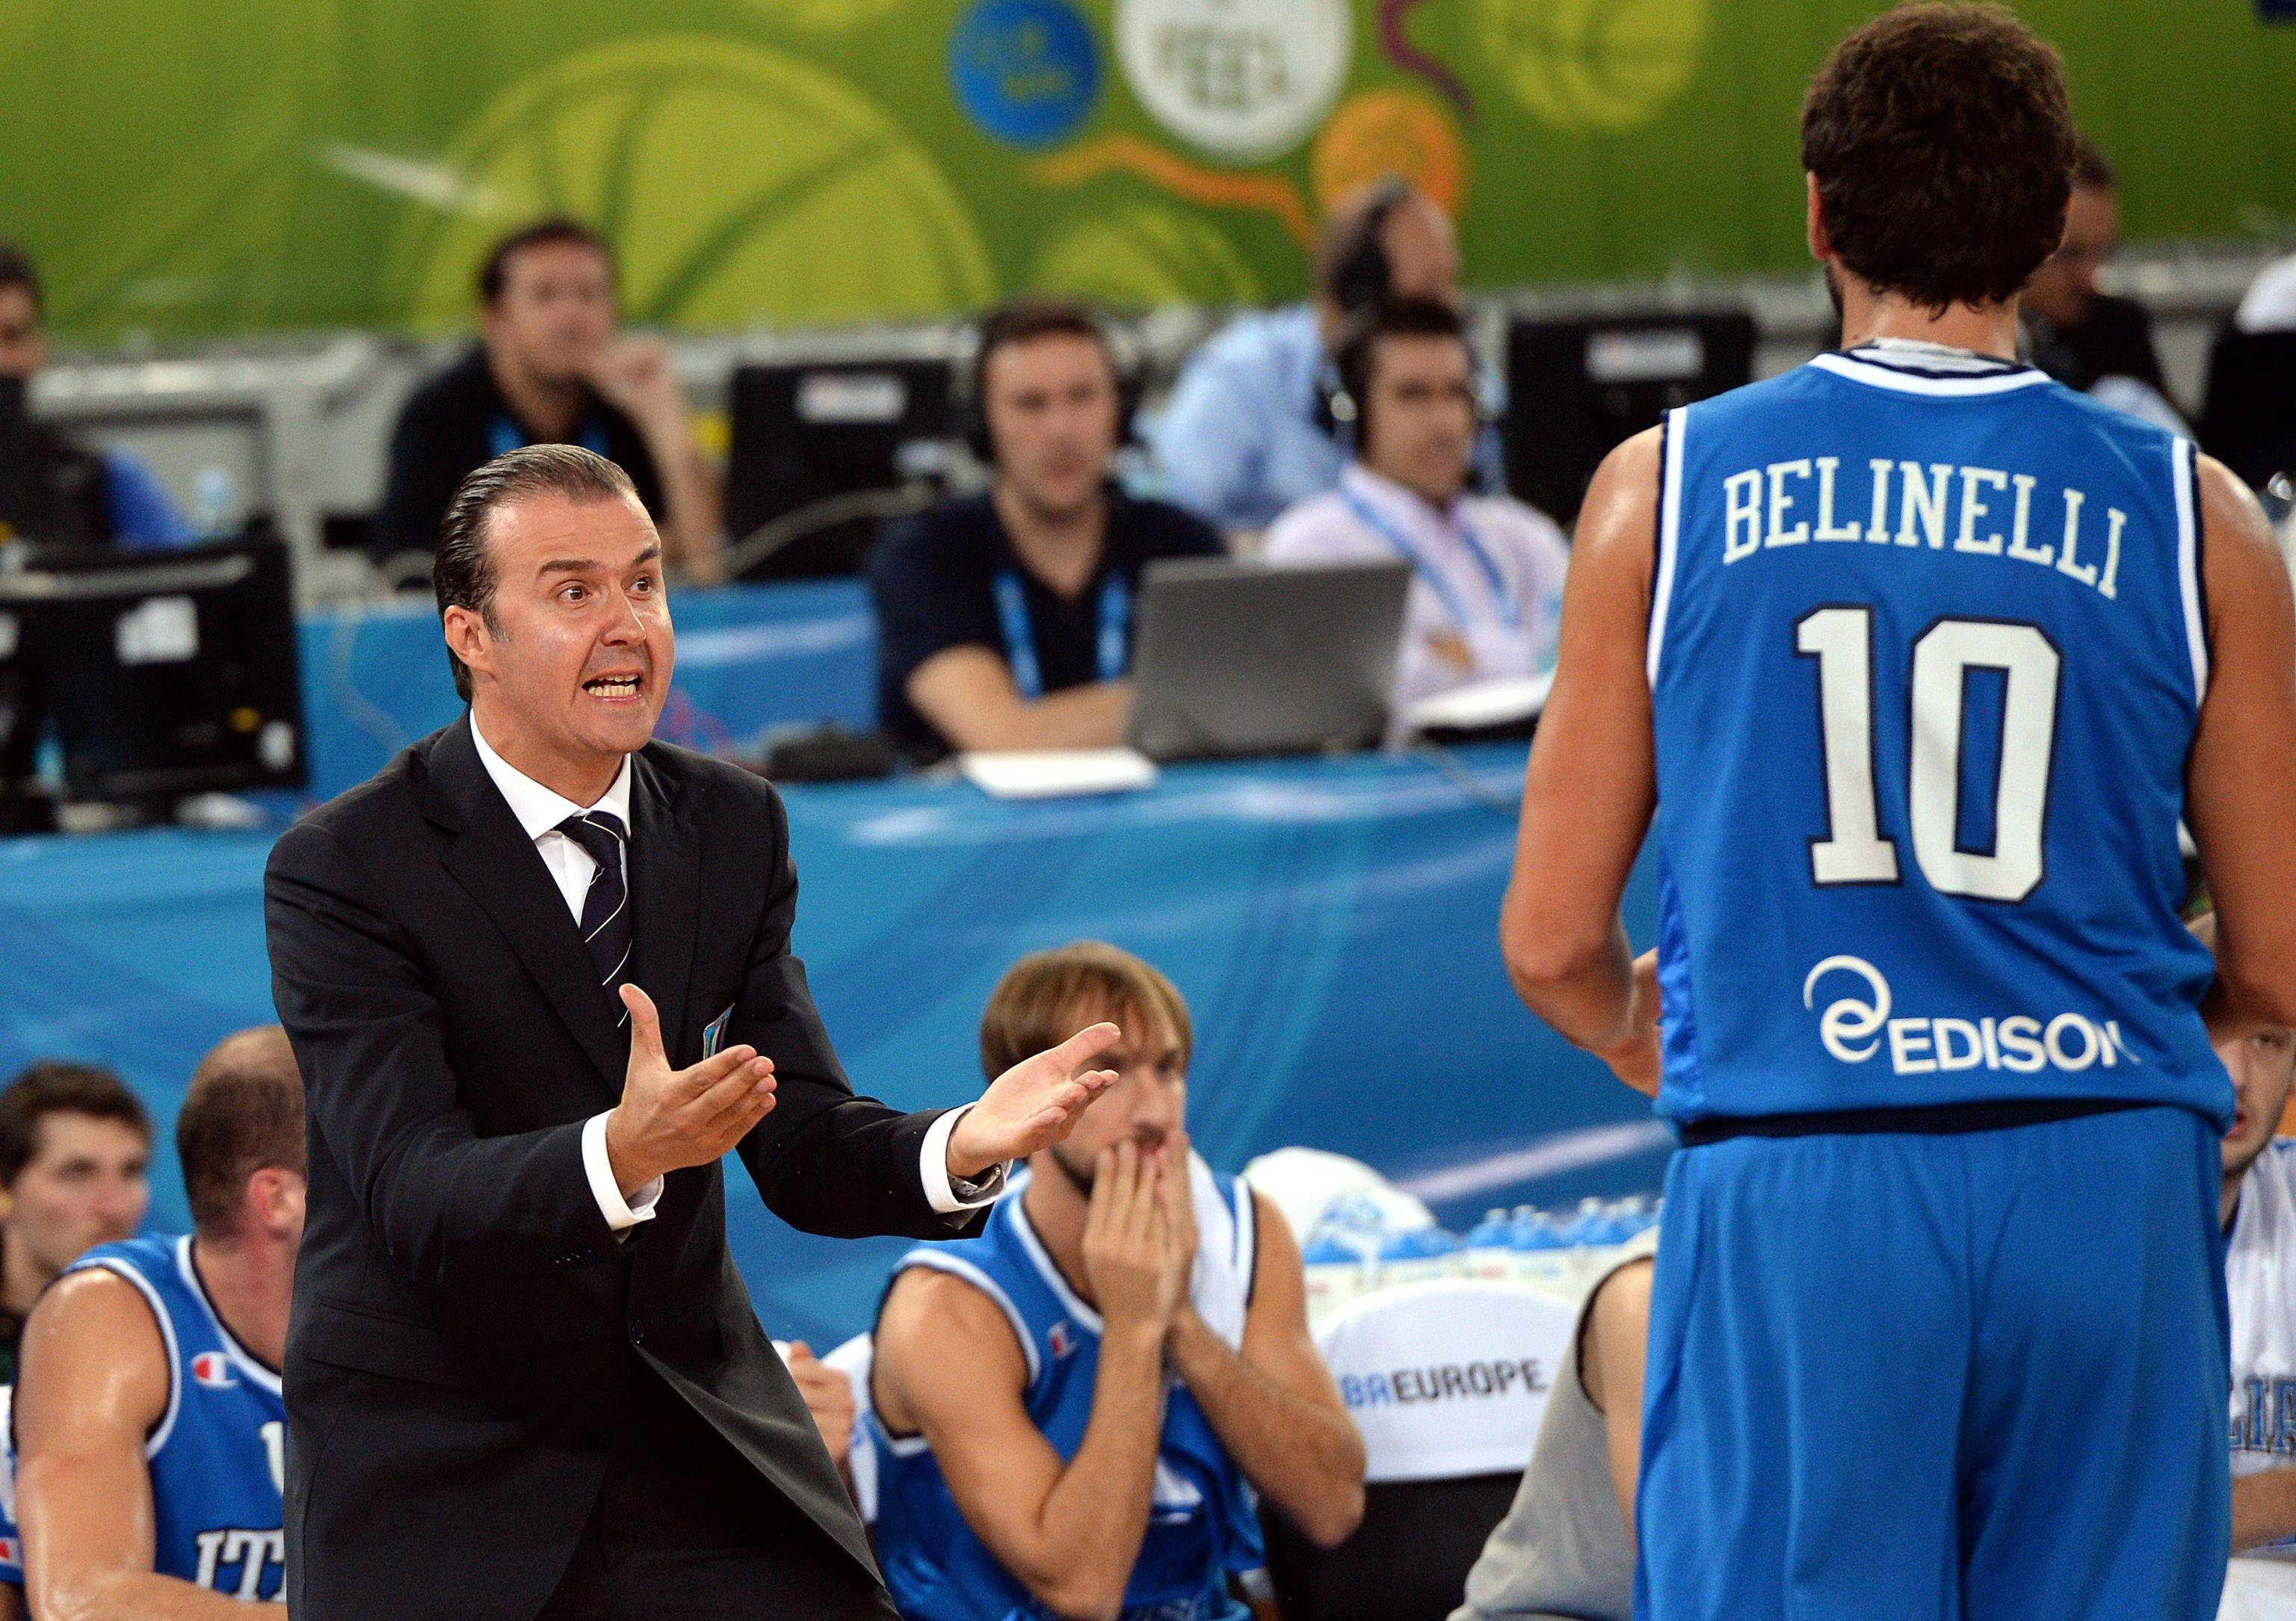 epa03874672 Italian head coach Simone Pianigiani talks to his player Marco Belinelli (R)  during the EuroBasket 2013 quarter-final match between Lithuania and Italy at Stozice Arena in Ljubljana, Slovenia, 19 September 2013.  EPA/GEORGI LICOVSKI